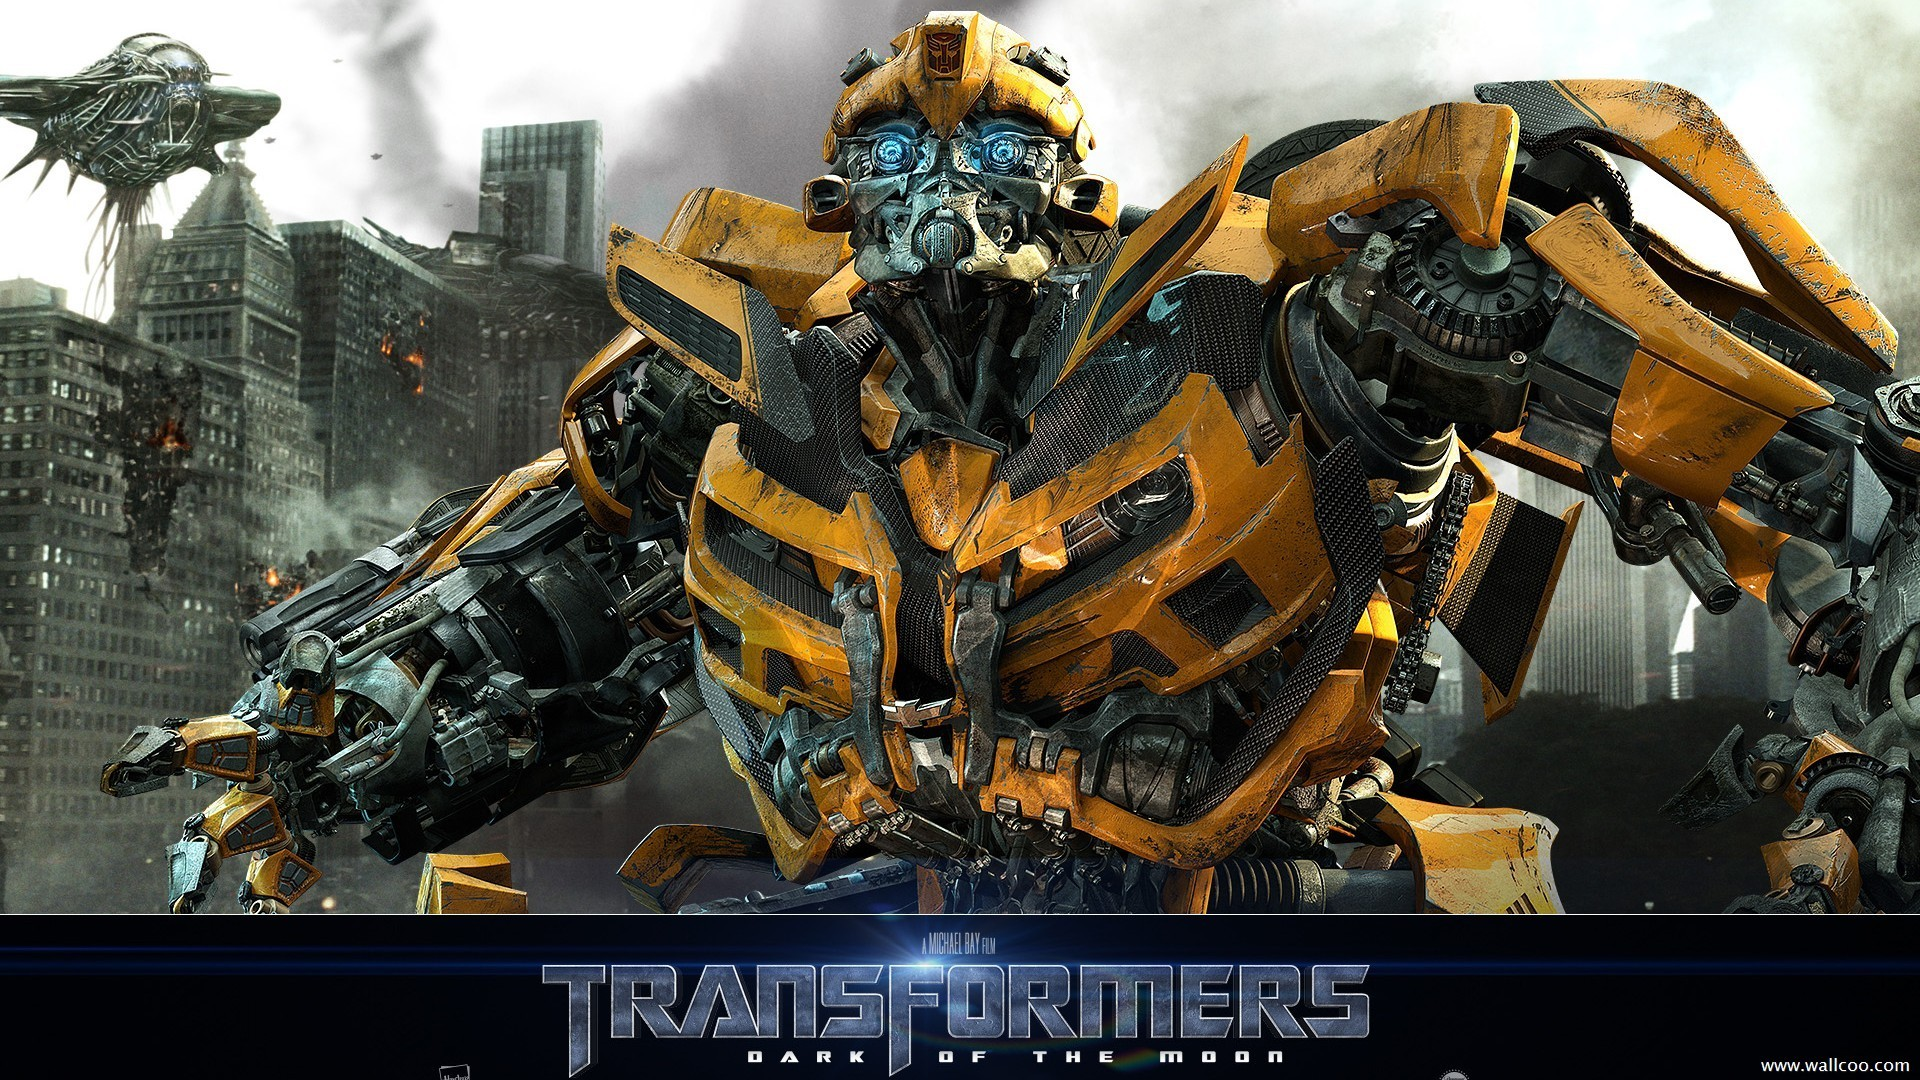 Transformers wallpapers hd 75 images - Transformers prime wallpaper ...